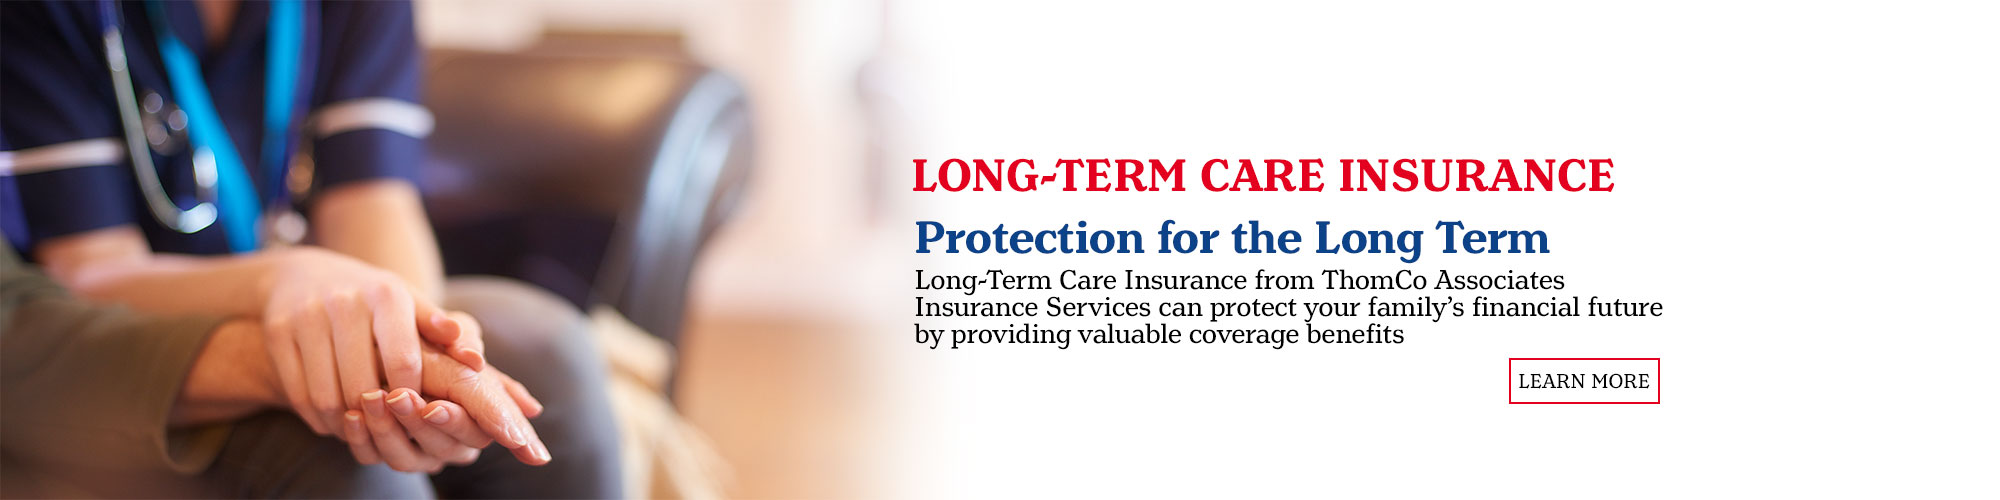 Long-Term Care Insurance. Protection for the Long Term. Long-Term Care Insurance from ThomCo Associates Insurance Services can protect your families financial future by providing valuable coverage benefits. Learn More